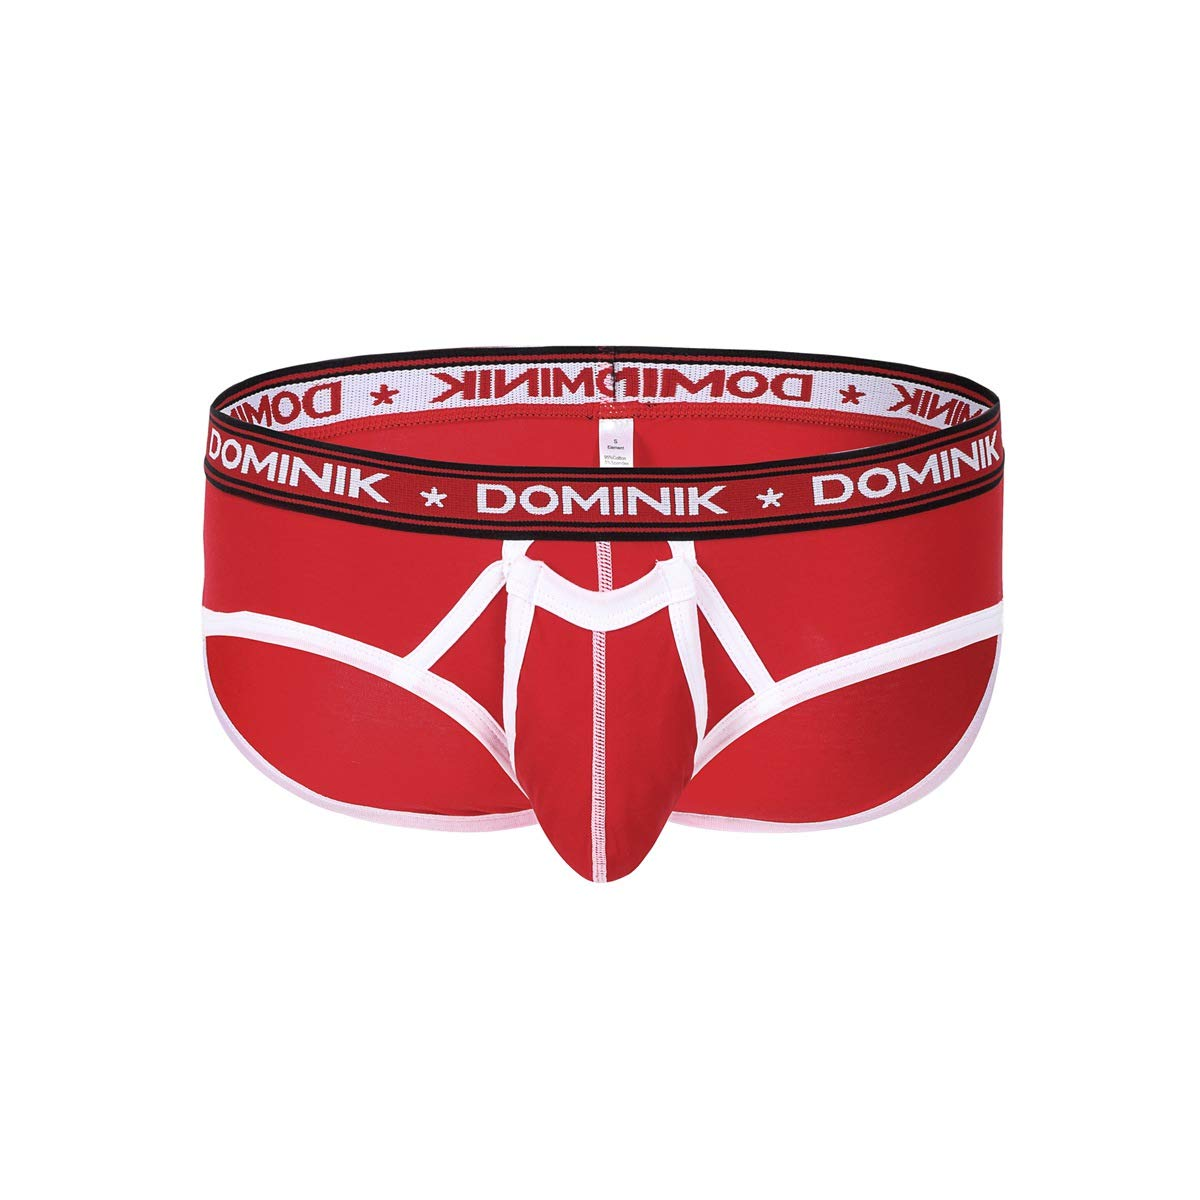 Dominik Underwear Cotton Brief, Mens, Red